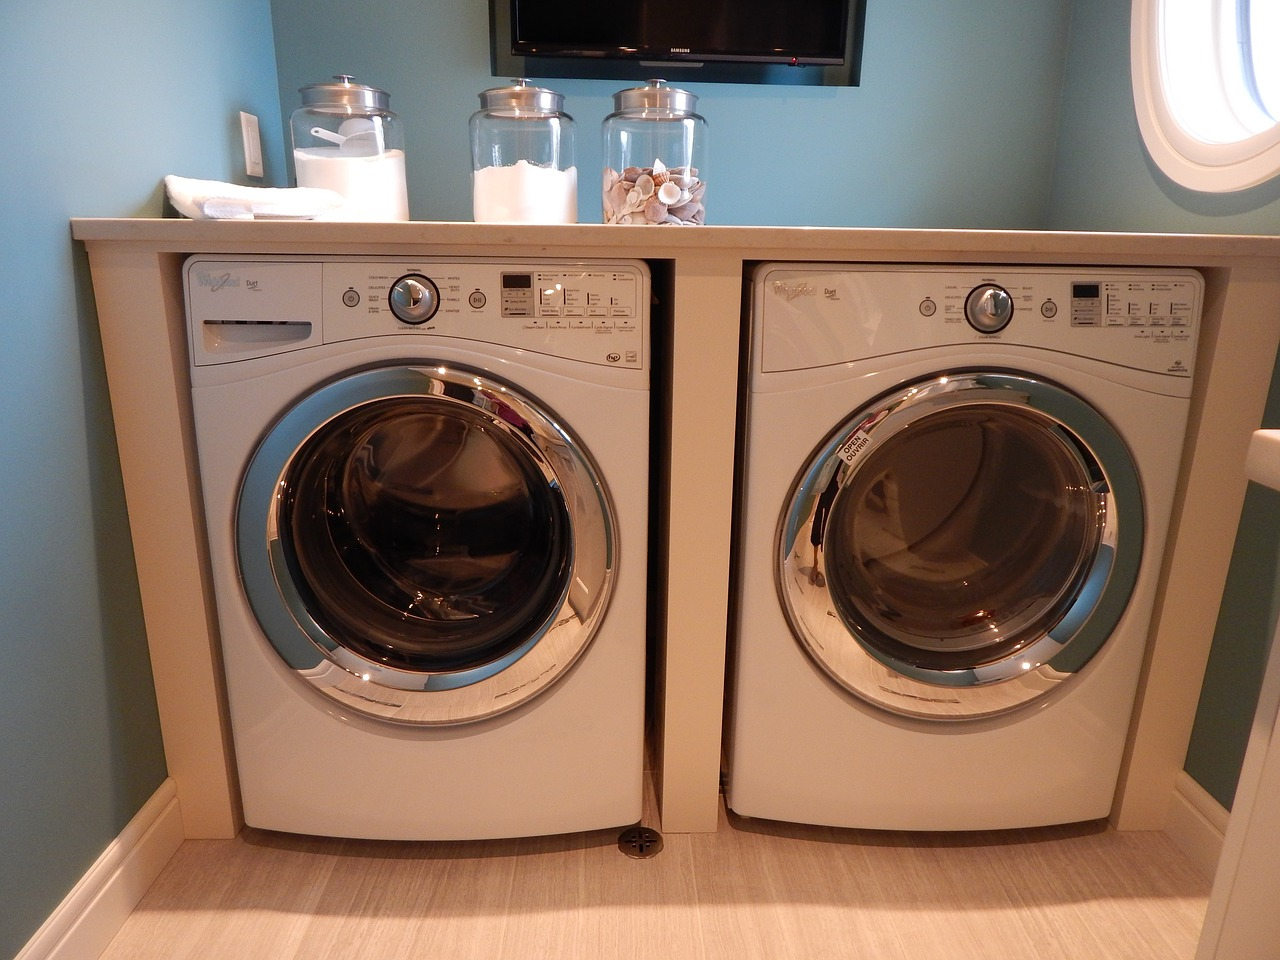 Image of a washer dryer set